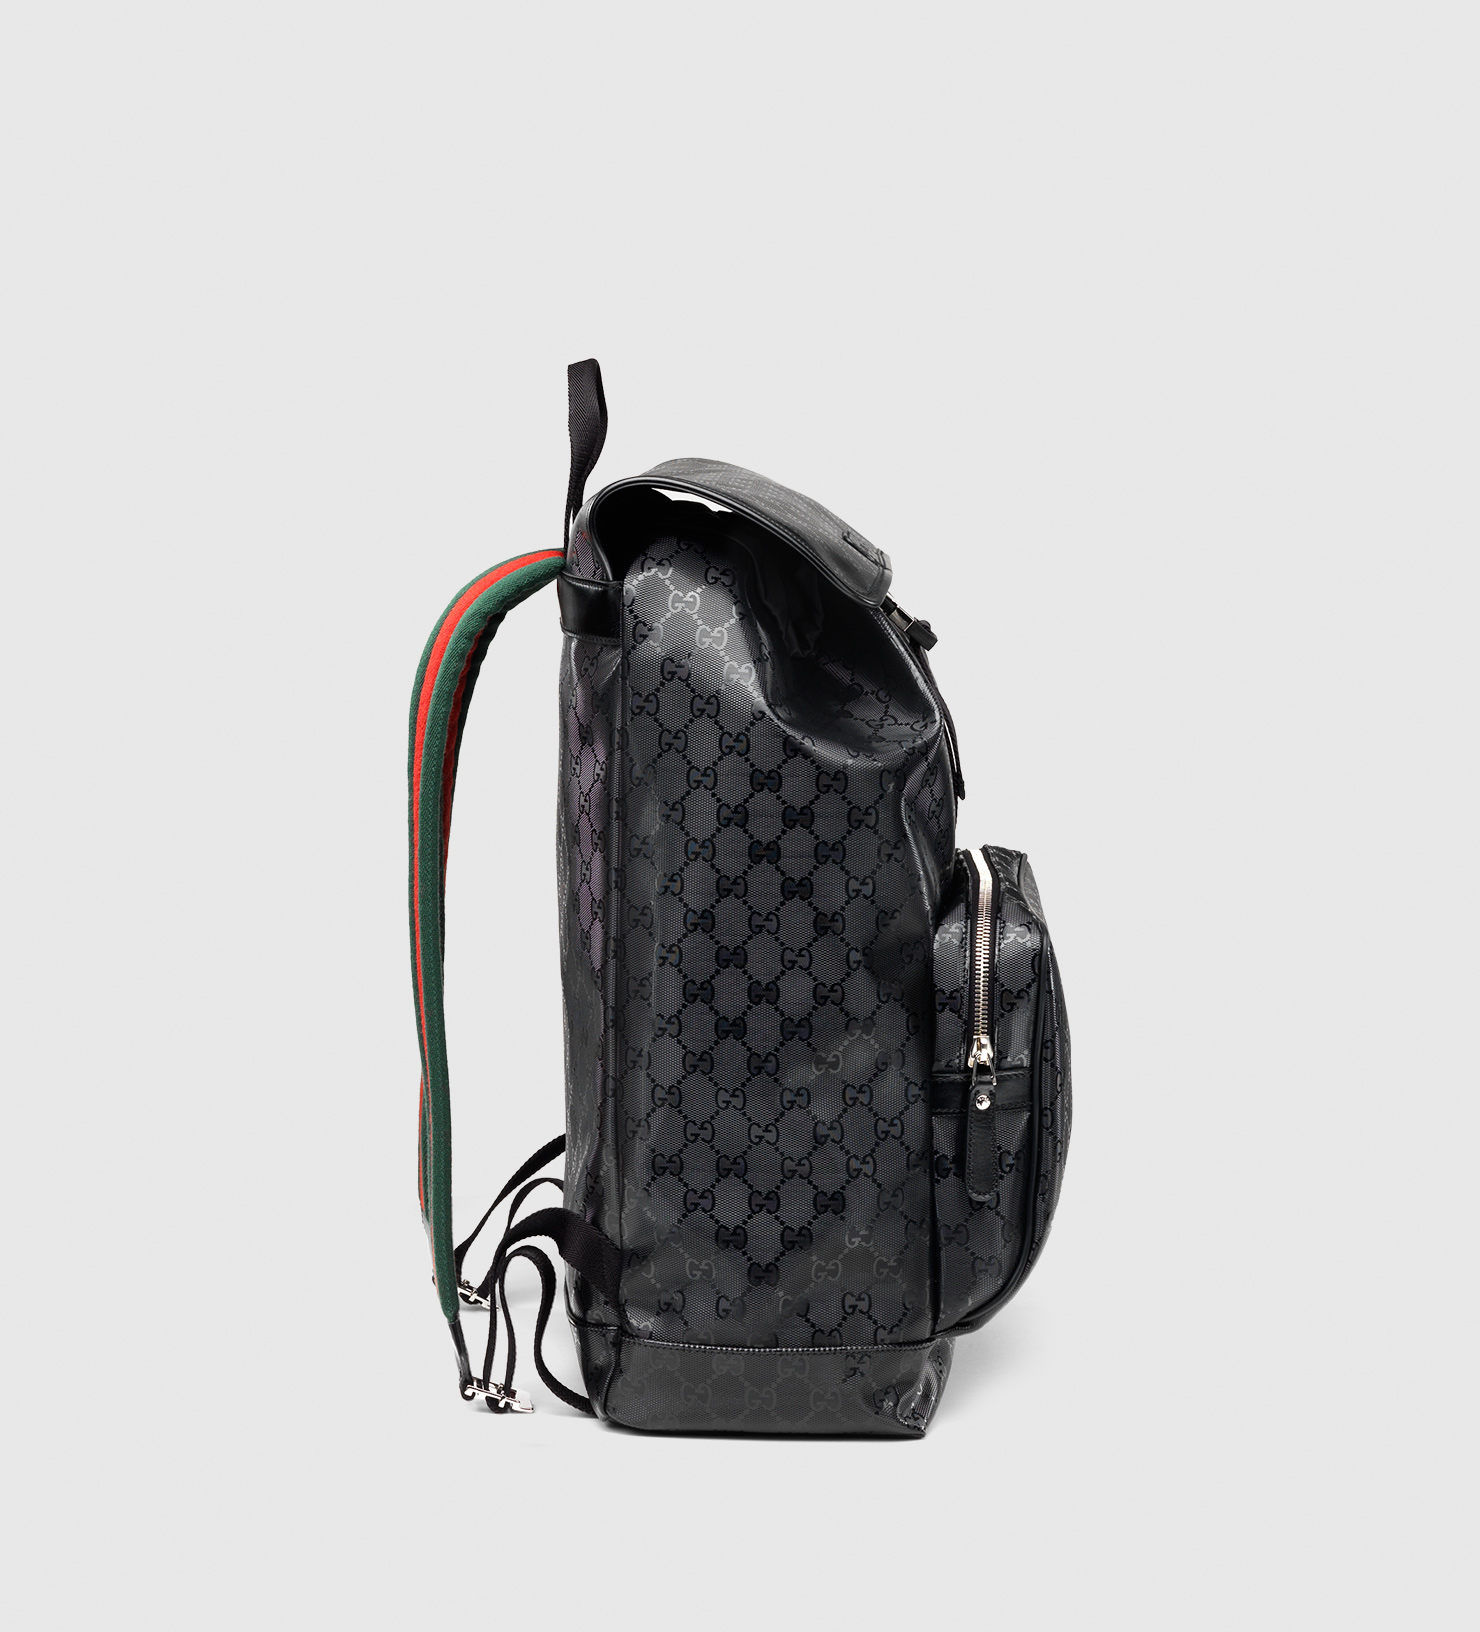 38c07fd3fdebd0 Gucci 500 By Gg Imprimé Backpack in Black - Lyst